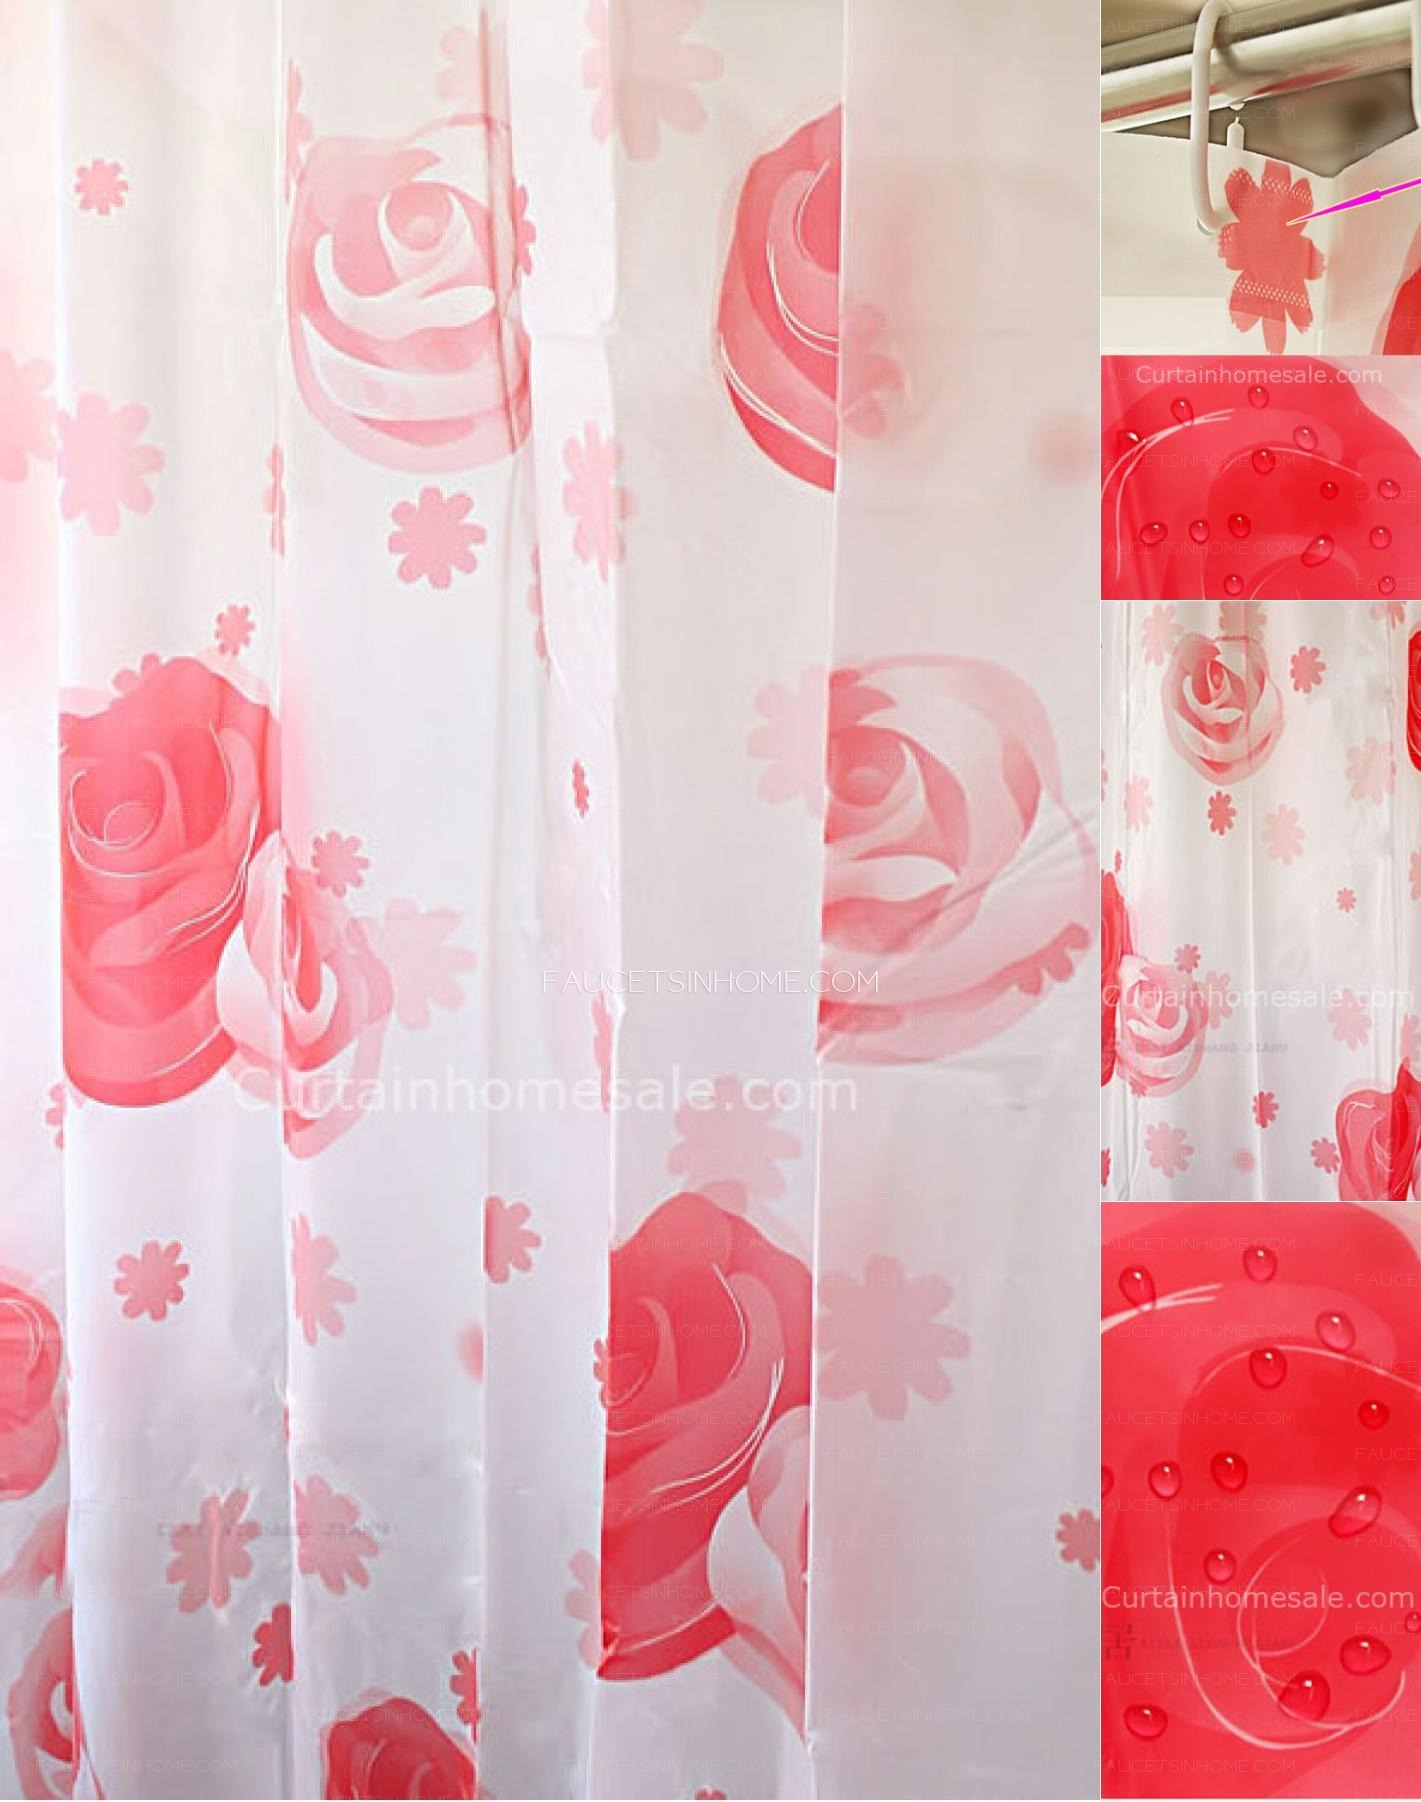 Funky shower curtains - Pastoral Fancy Shower Curtain And Funky Red Color Bathroom